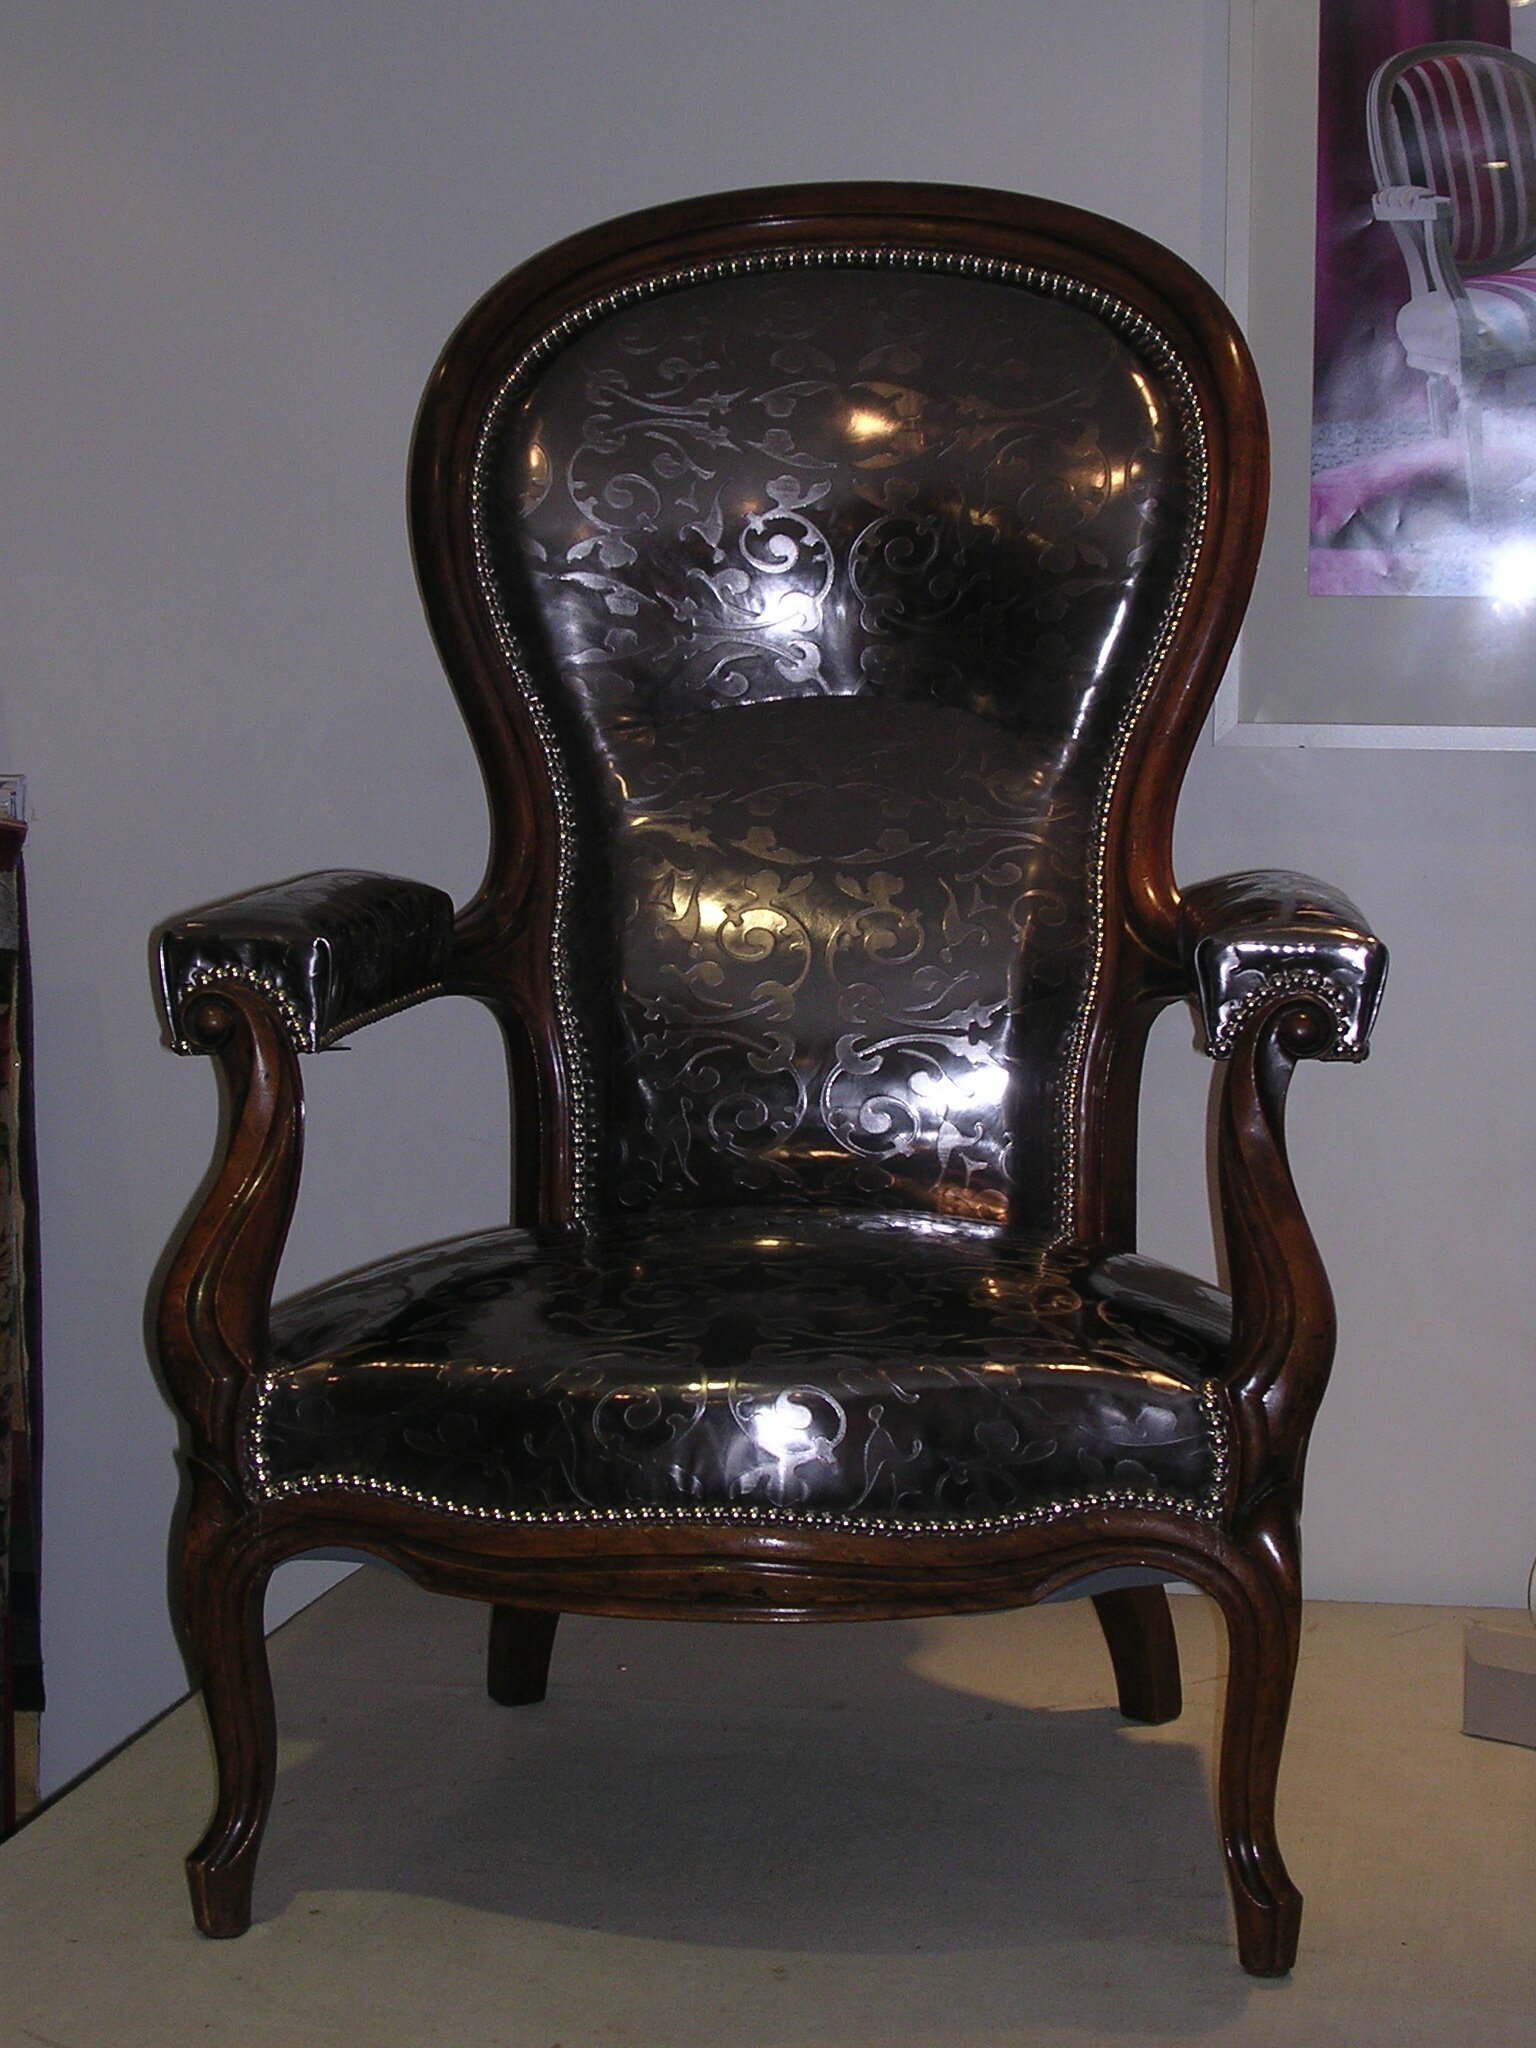 fauteuil louis philippe cr maill re photo de r fection. Black Bedroom Furniture Sets. Home Design Ideas